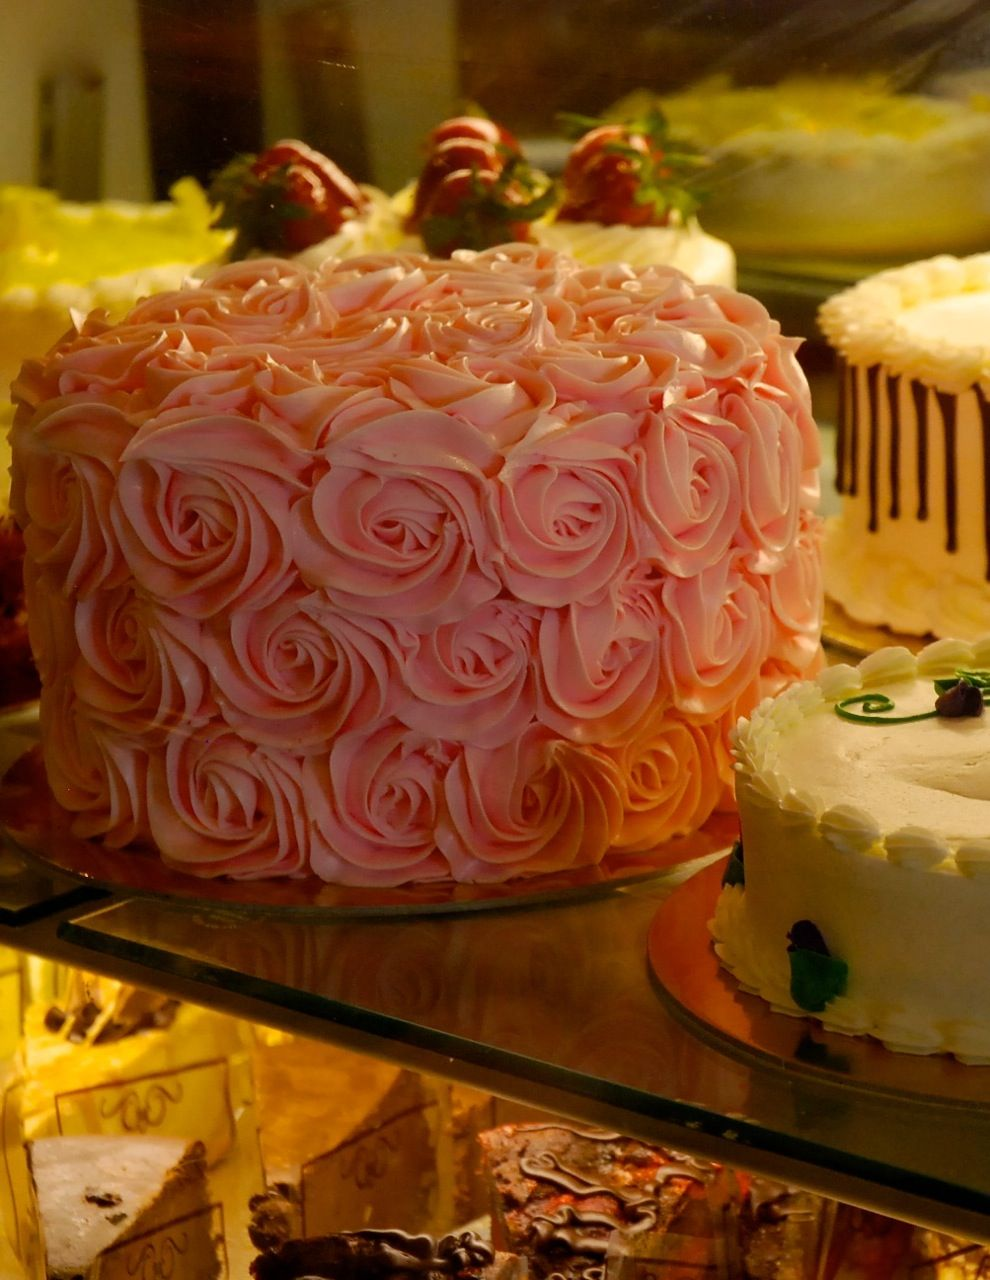 Spectacular Spectacular rose decorated cake for sale at Schat's Bakery in Ukiah, California Zippertravel.com Digital Edition